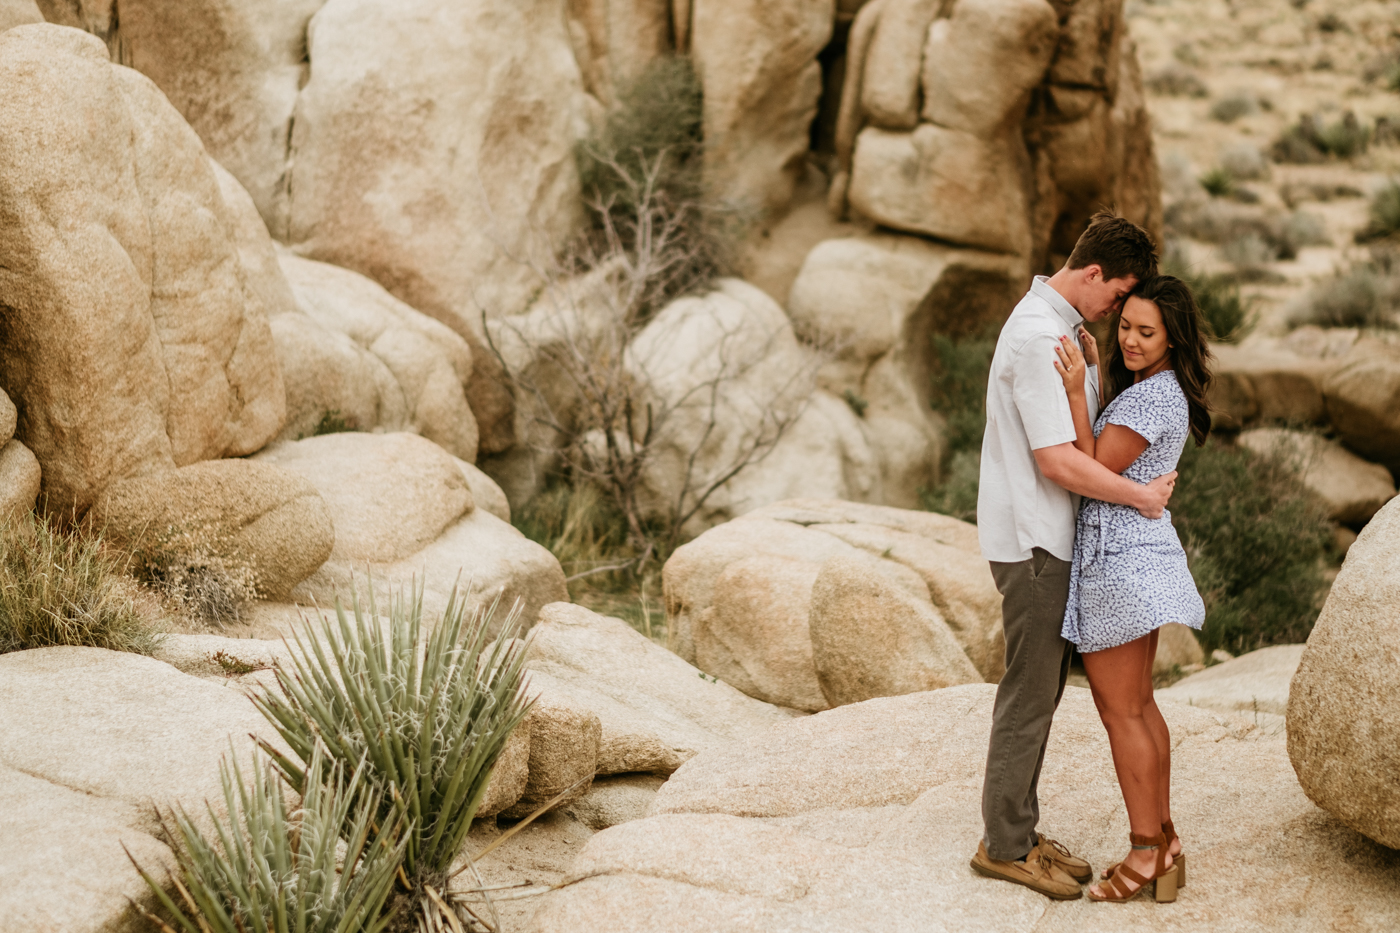 Baliey+Thomas.Engagement.JoshuaTree©mileswittboyer.com2018-17.jpg